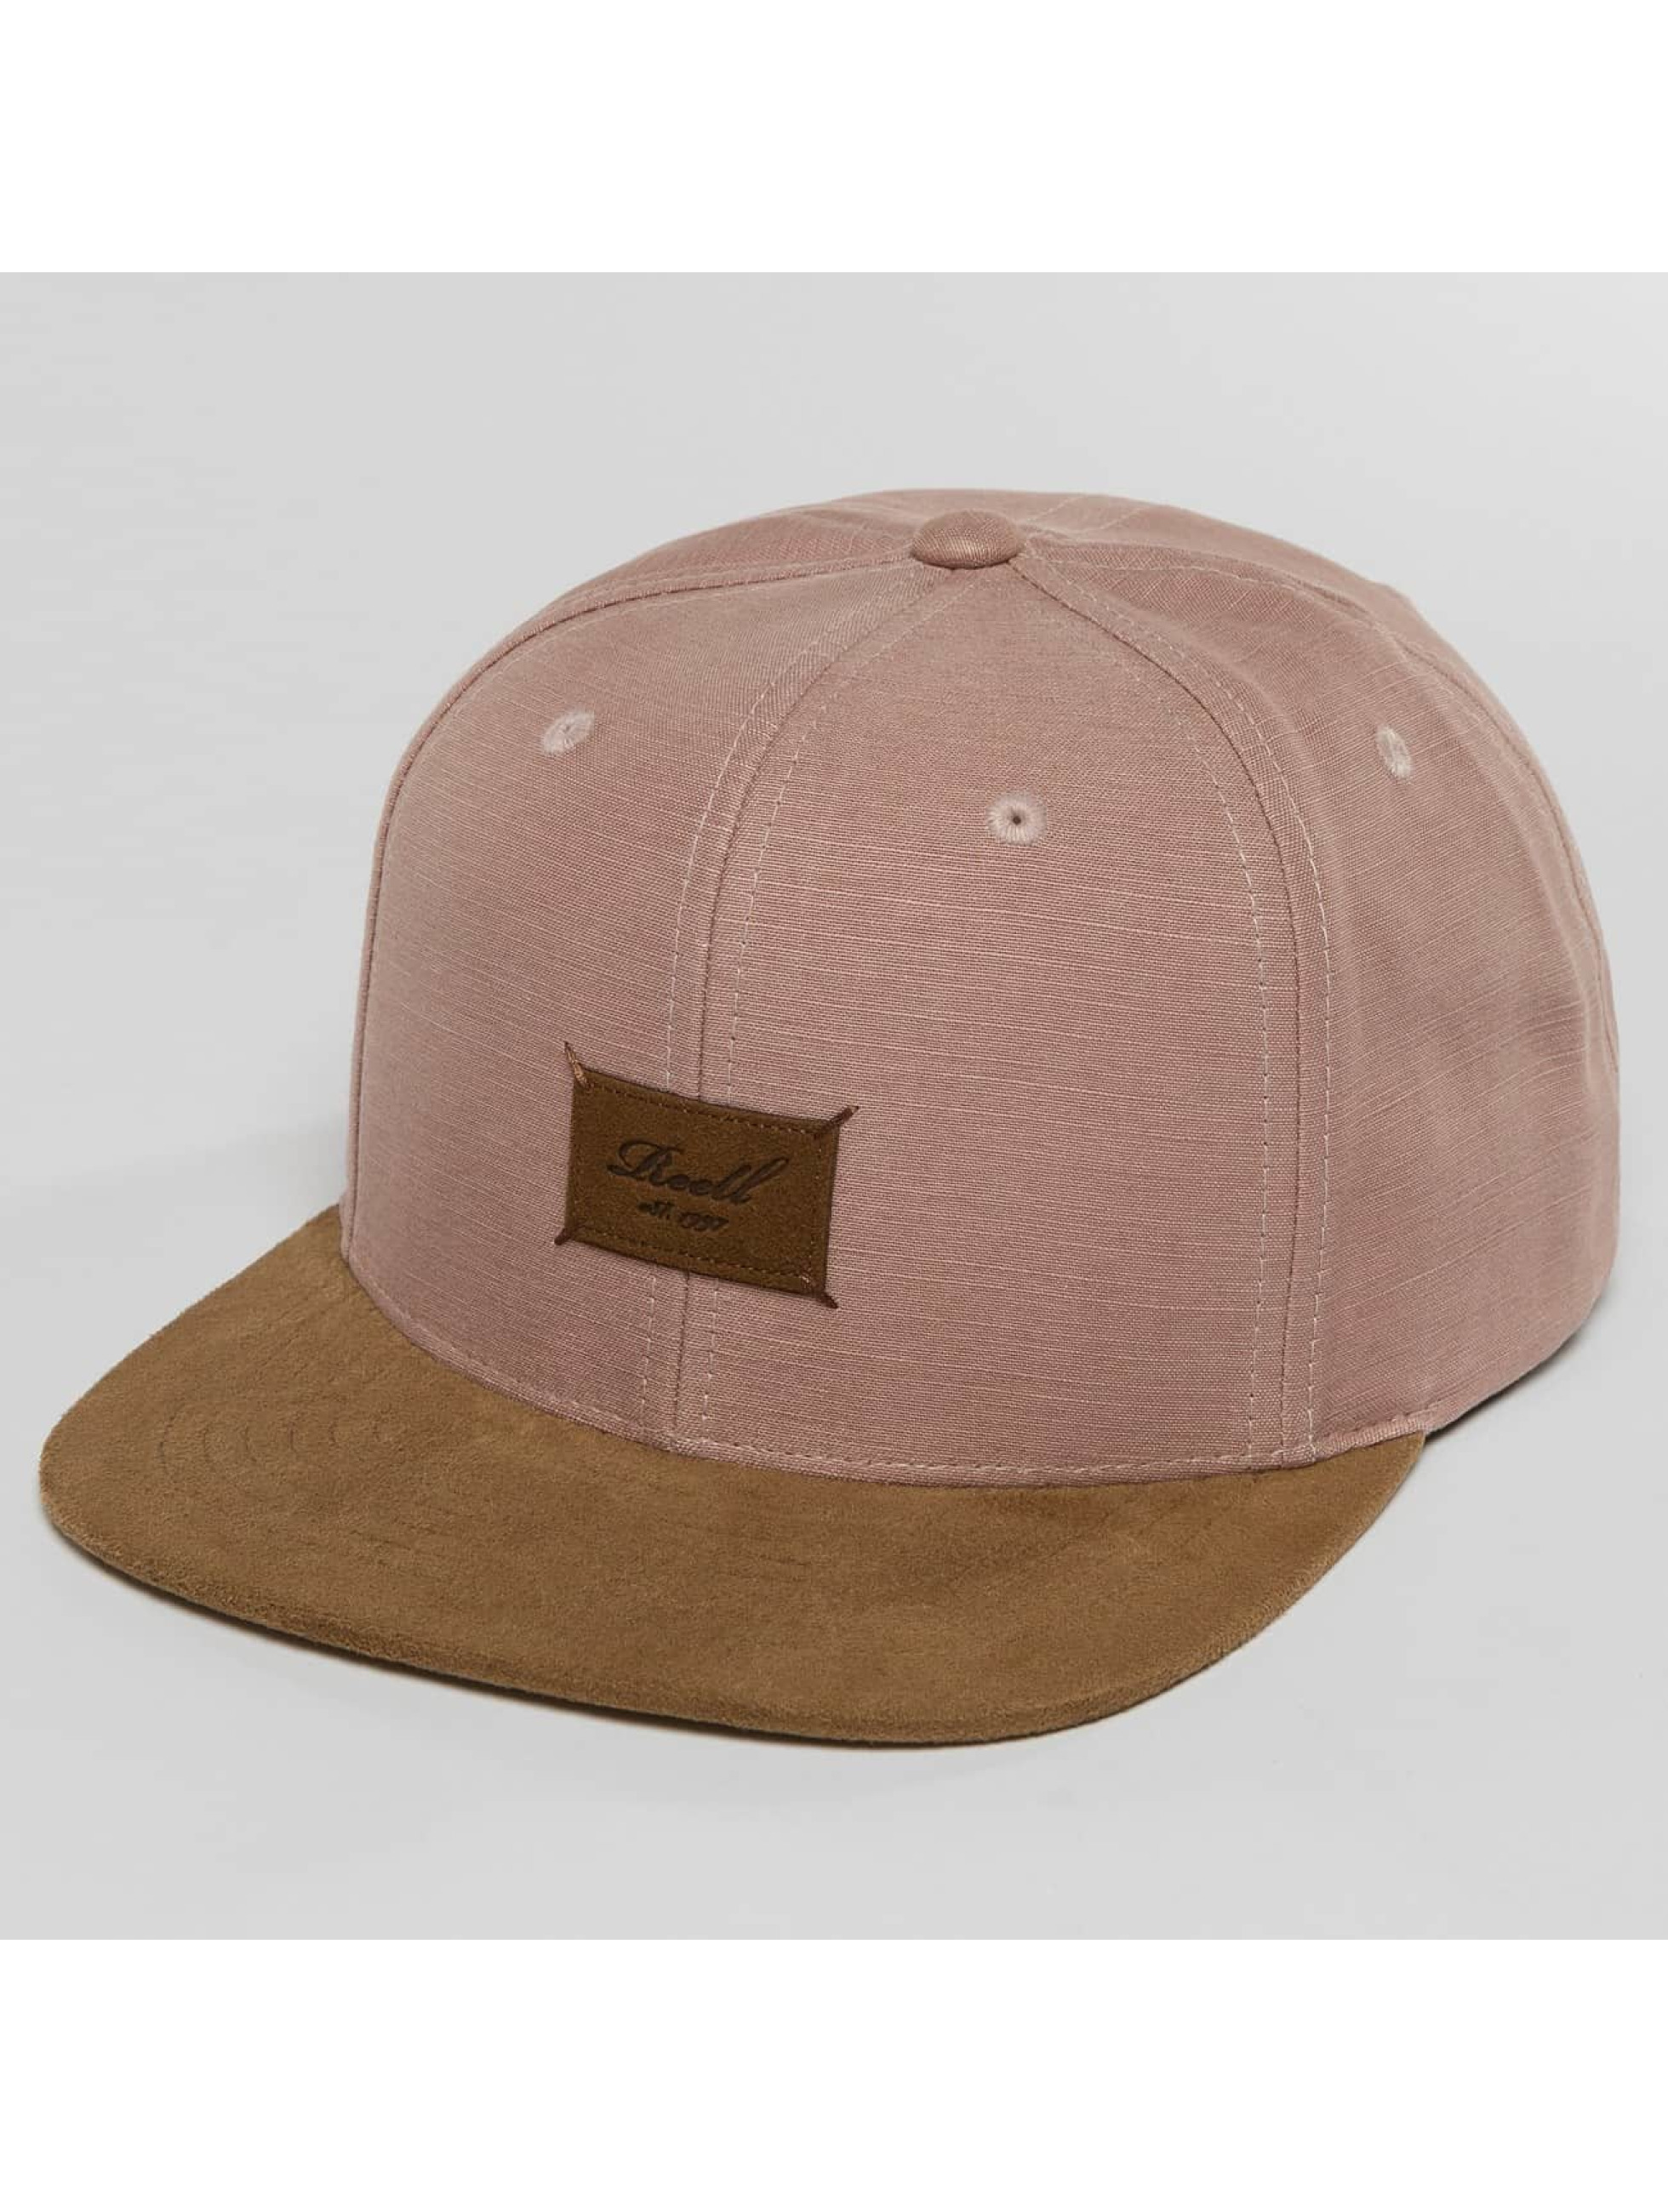 Reell Jeans Snapback Caps Suede vaaleanpunainen